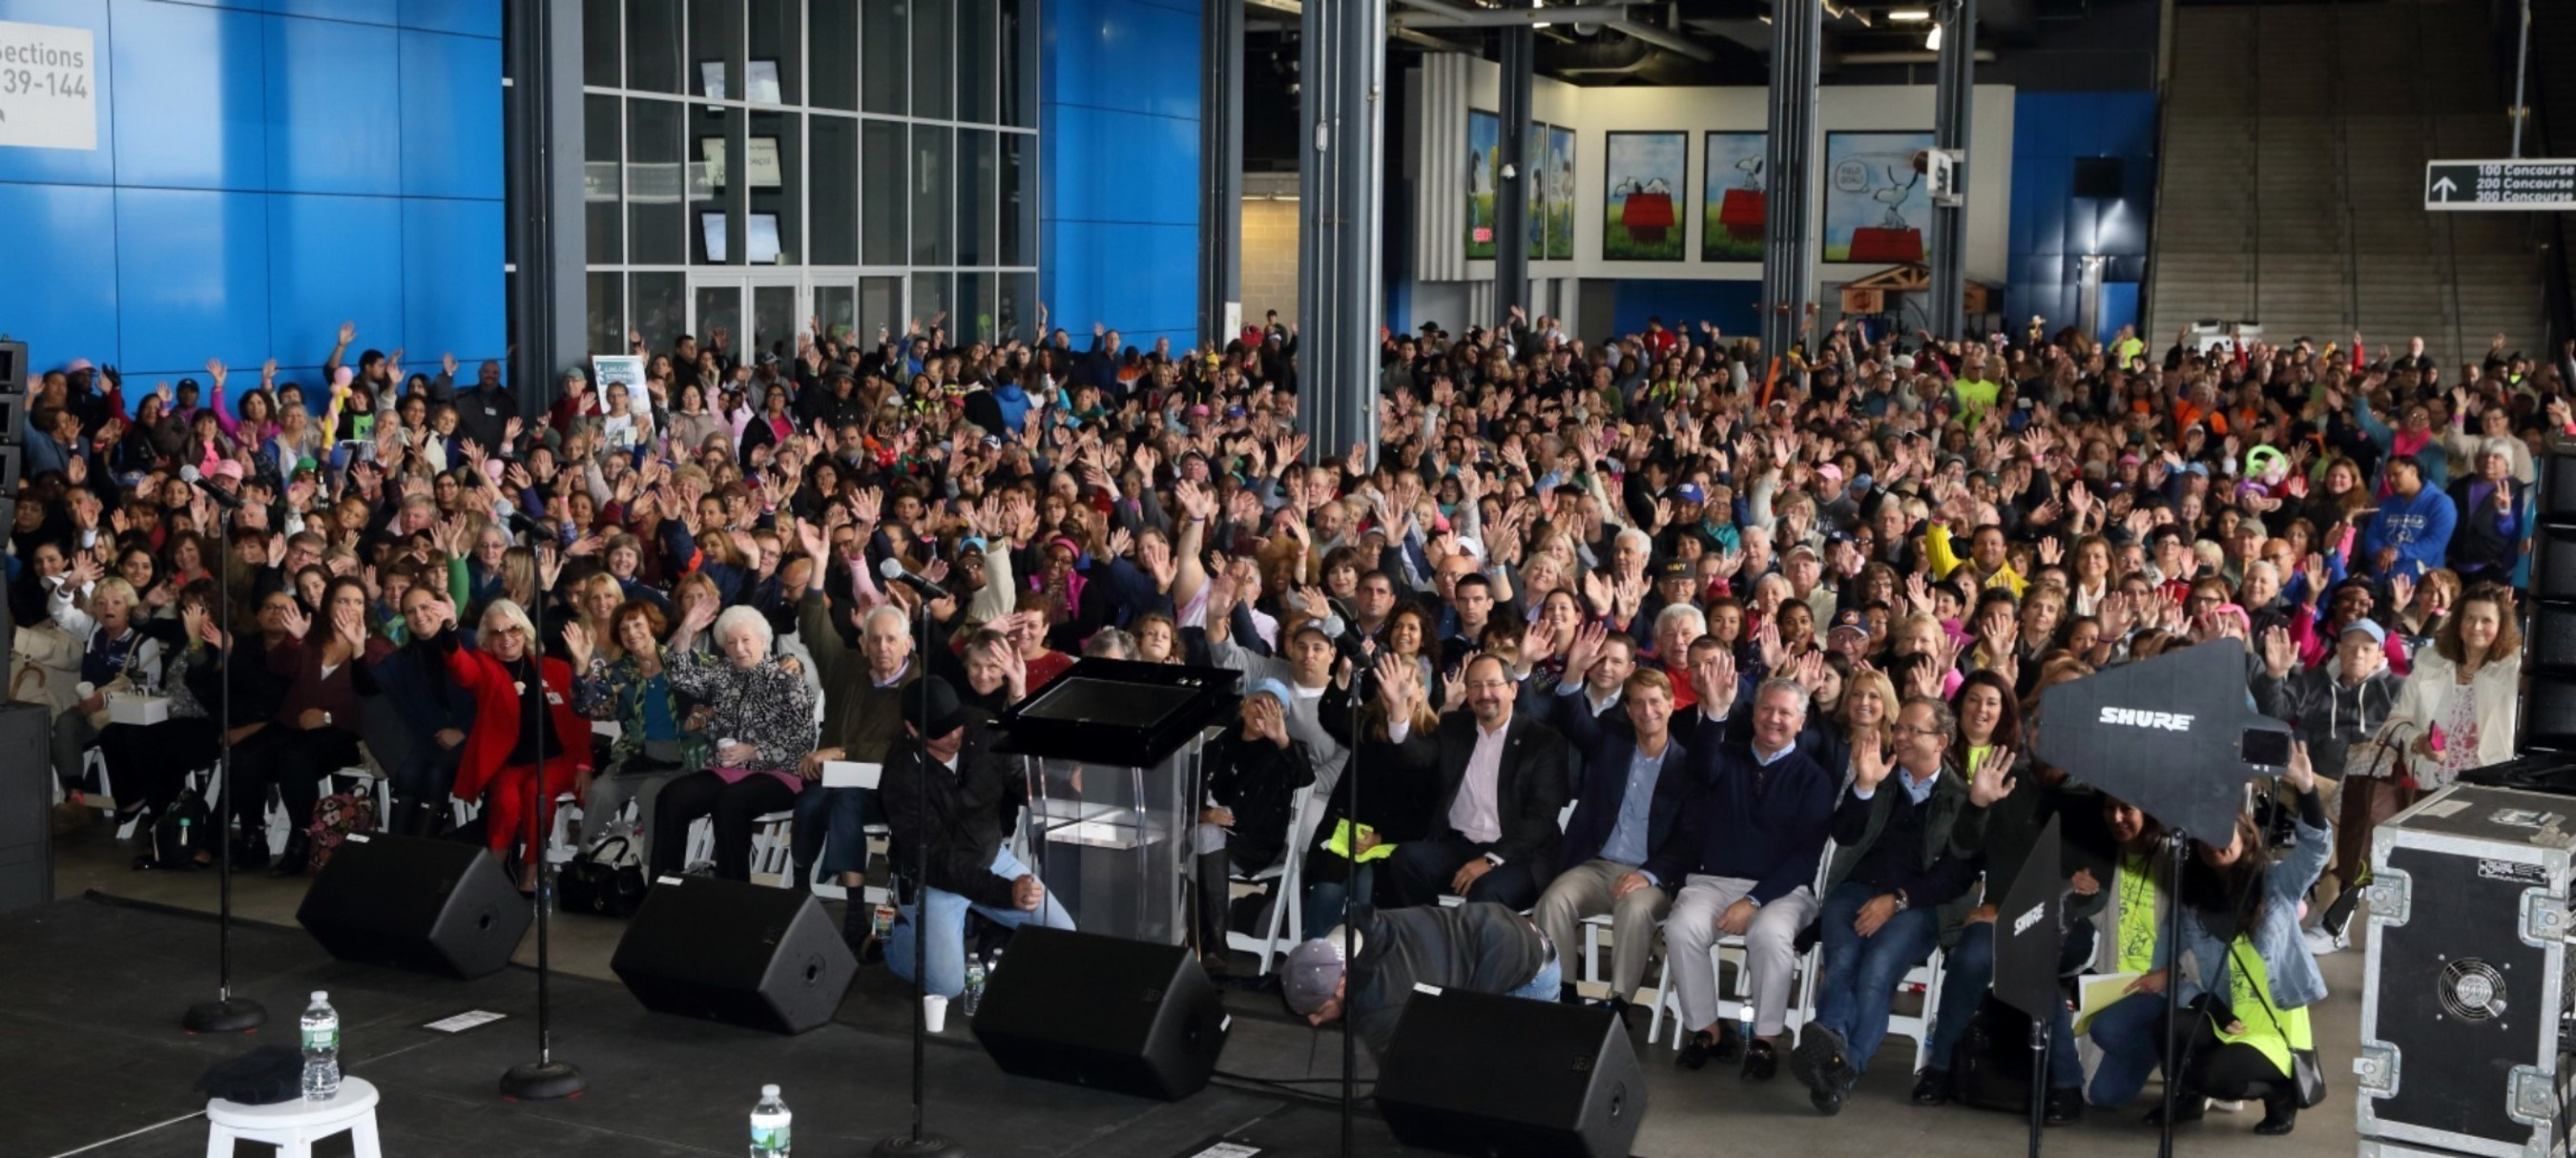 The crowd gets ready for the Midtown Men to perform. The concert and festivities were moved inside at MetLife Stadium due to the rain.